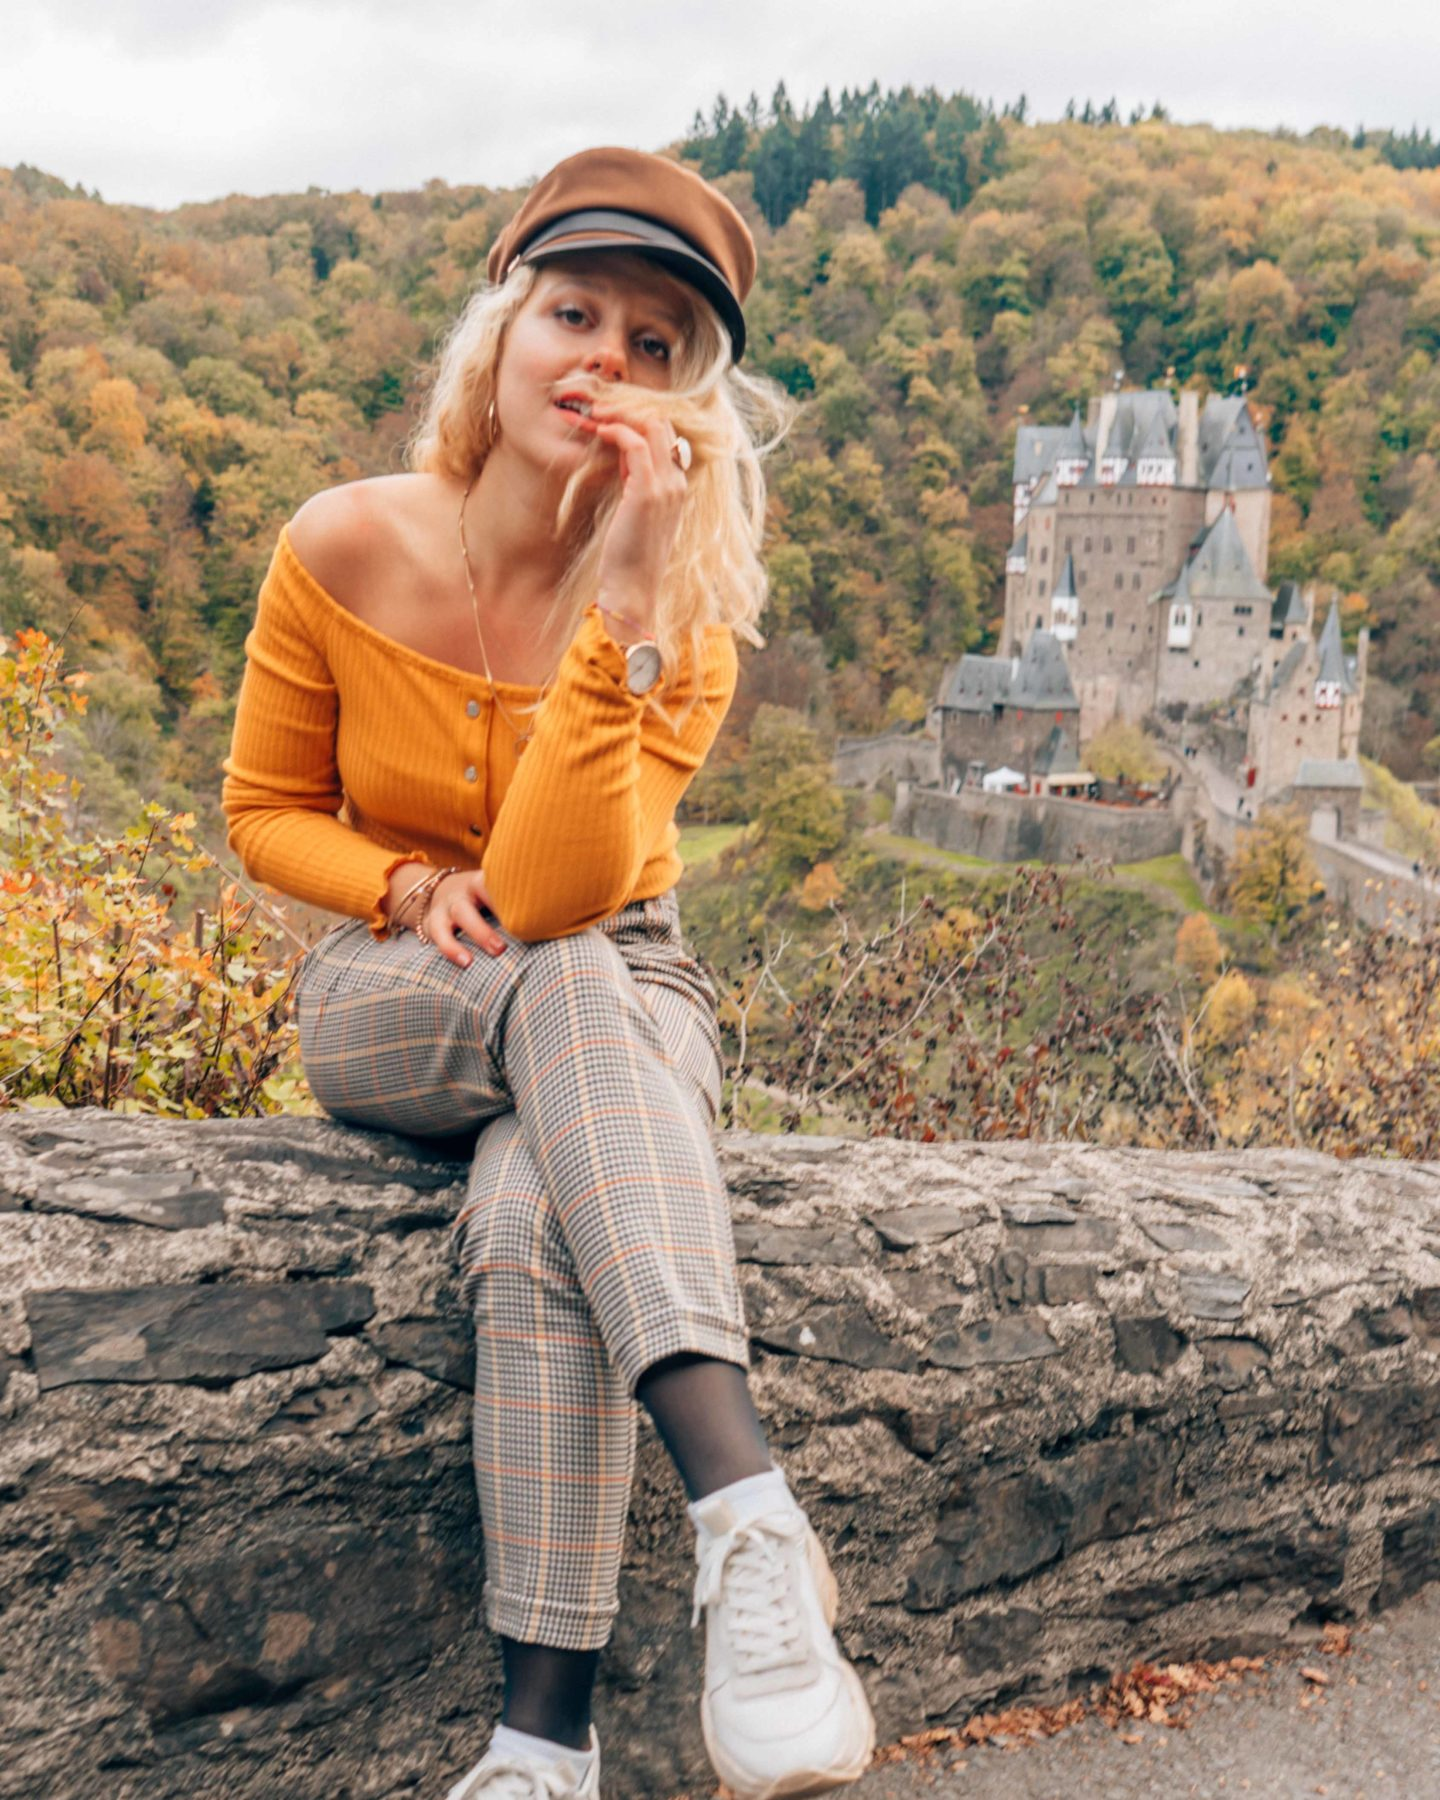 Burg Eltz surrounded by fall foliage